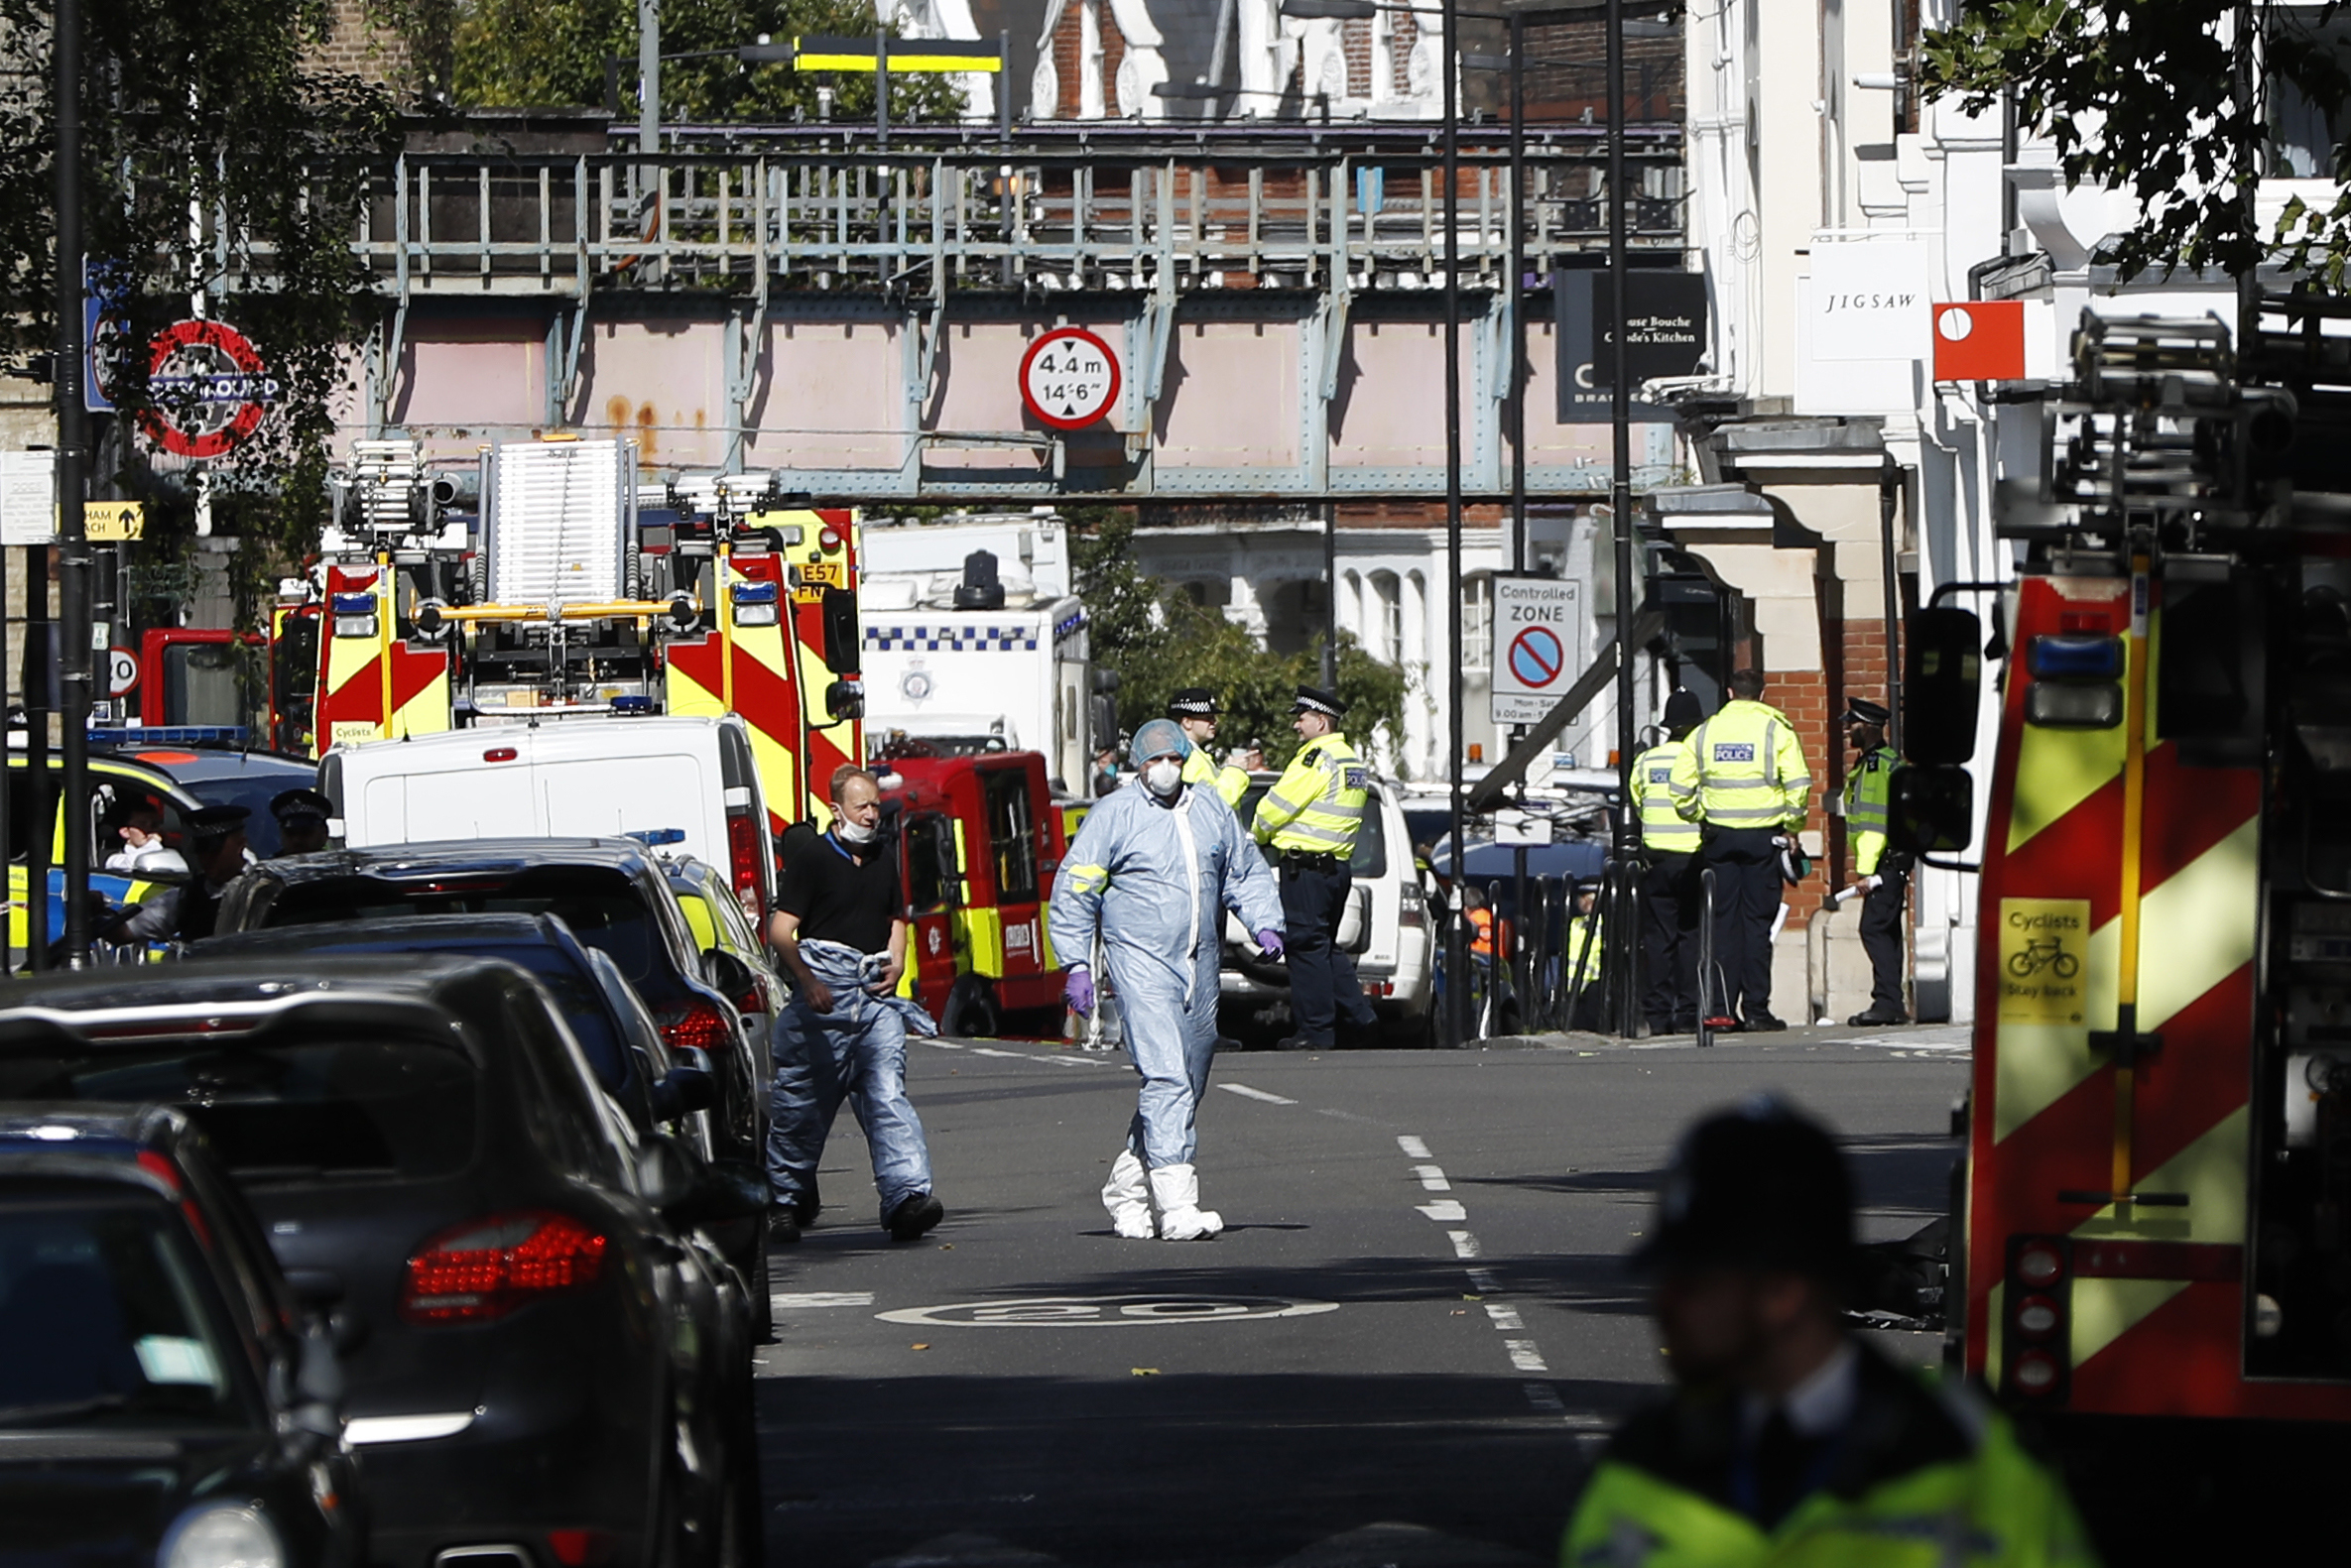 <div class='meta'><div class='origin-logo' data-origin='none'></div><span class='caption-text' data-credit='Kirsty Wigglesworth/AP Photo'>Police forensic officers walk within a cordon near where an incident happened, that police say they are investigating as a terrorist attack, at Parsons Green subway station.</span></div>